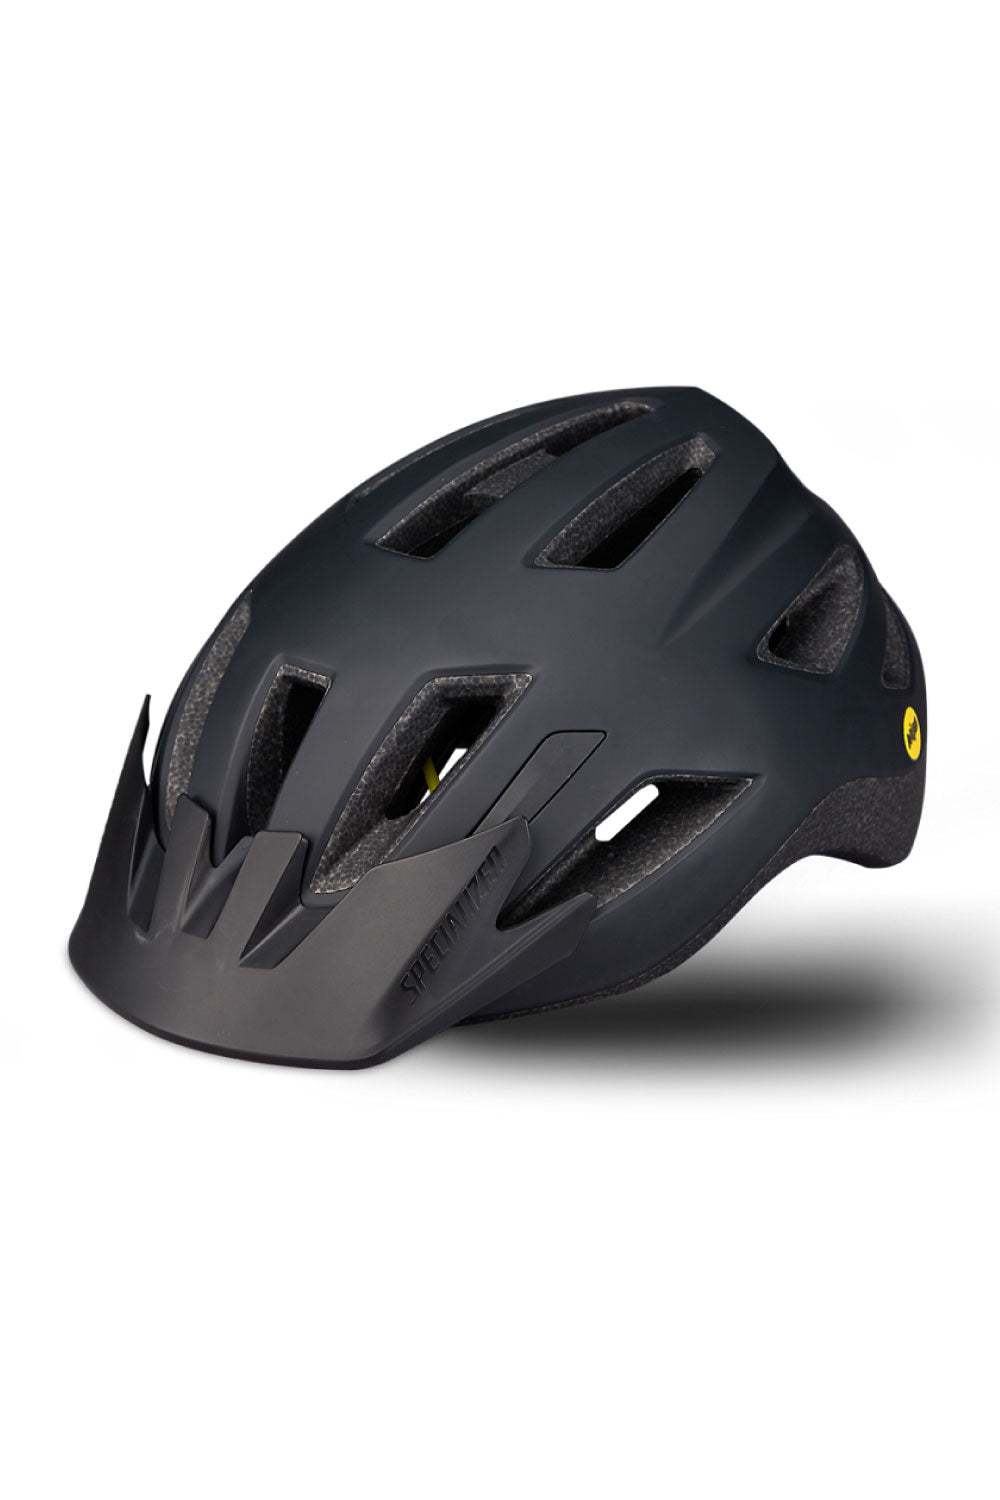 Specialized Shuffle Youth LED MIPS Mountain Bike Helmet (7-10 Years Old +)